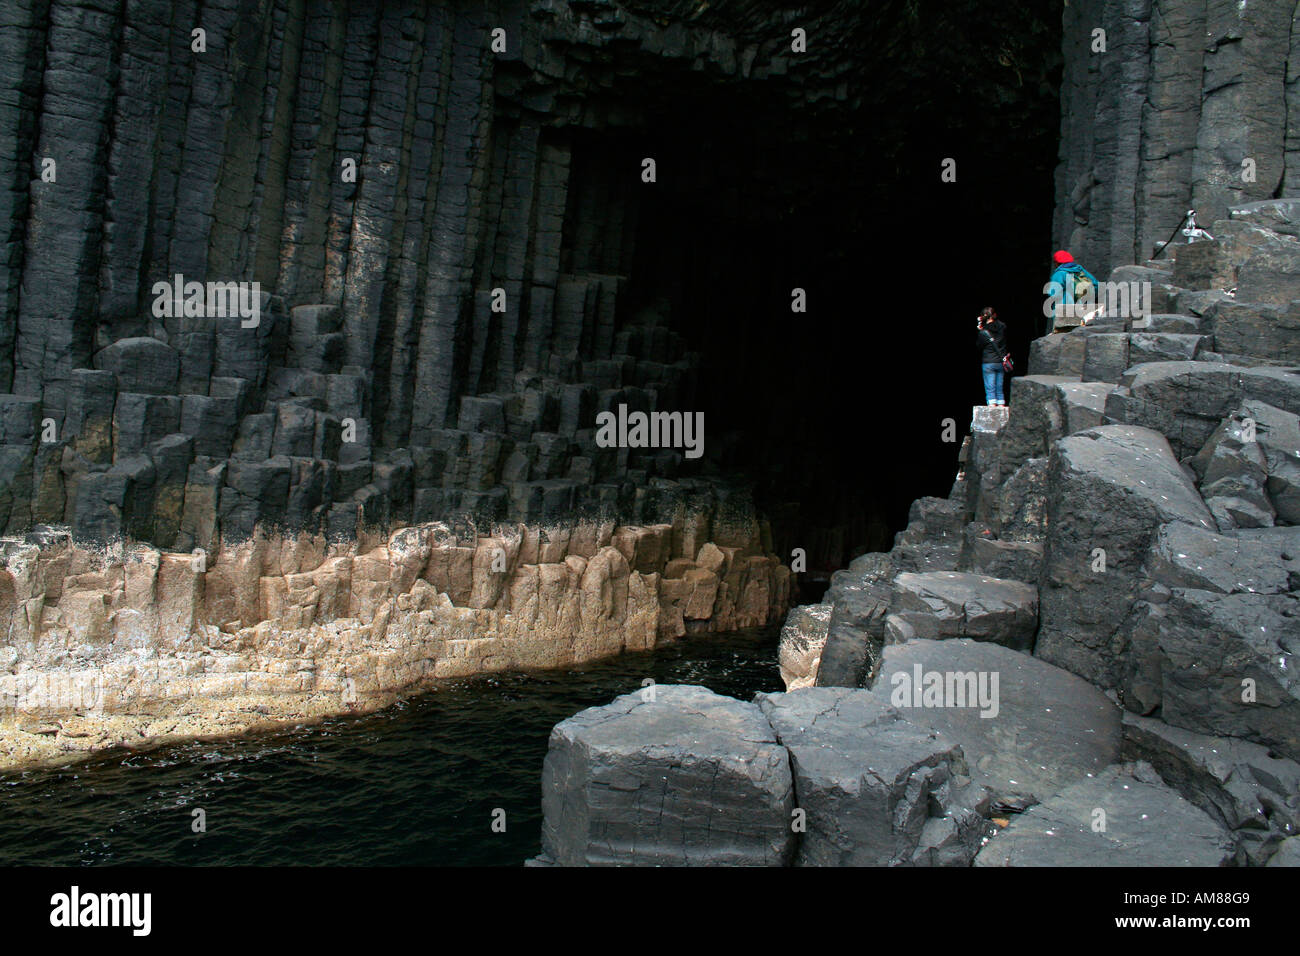 Fingal's Cave, Staffa, Treshnish Isles near Mull, West Coast of Scotland, UK - Stock Image